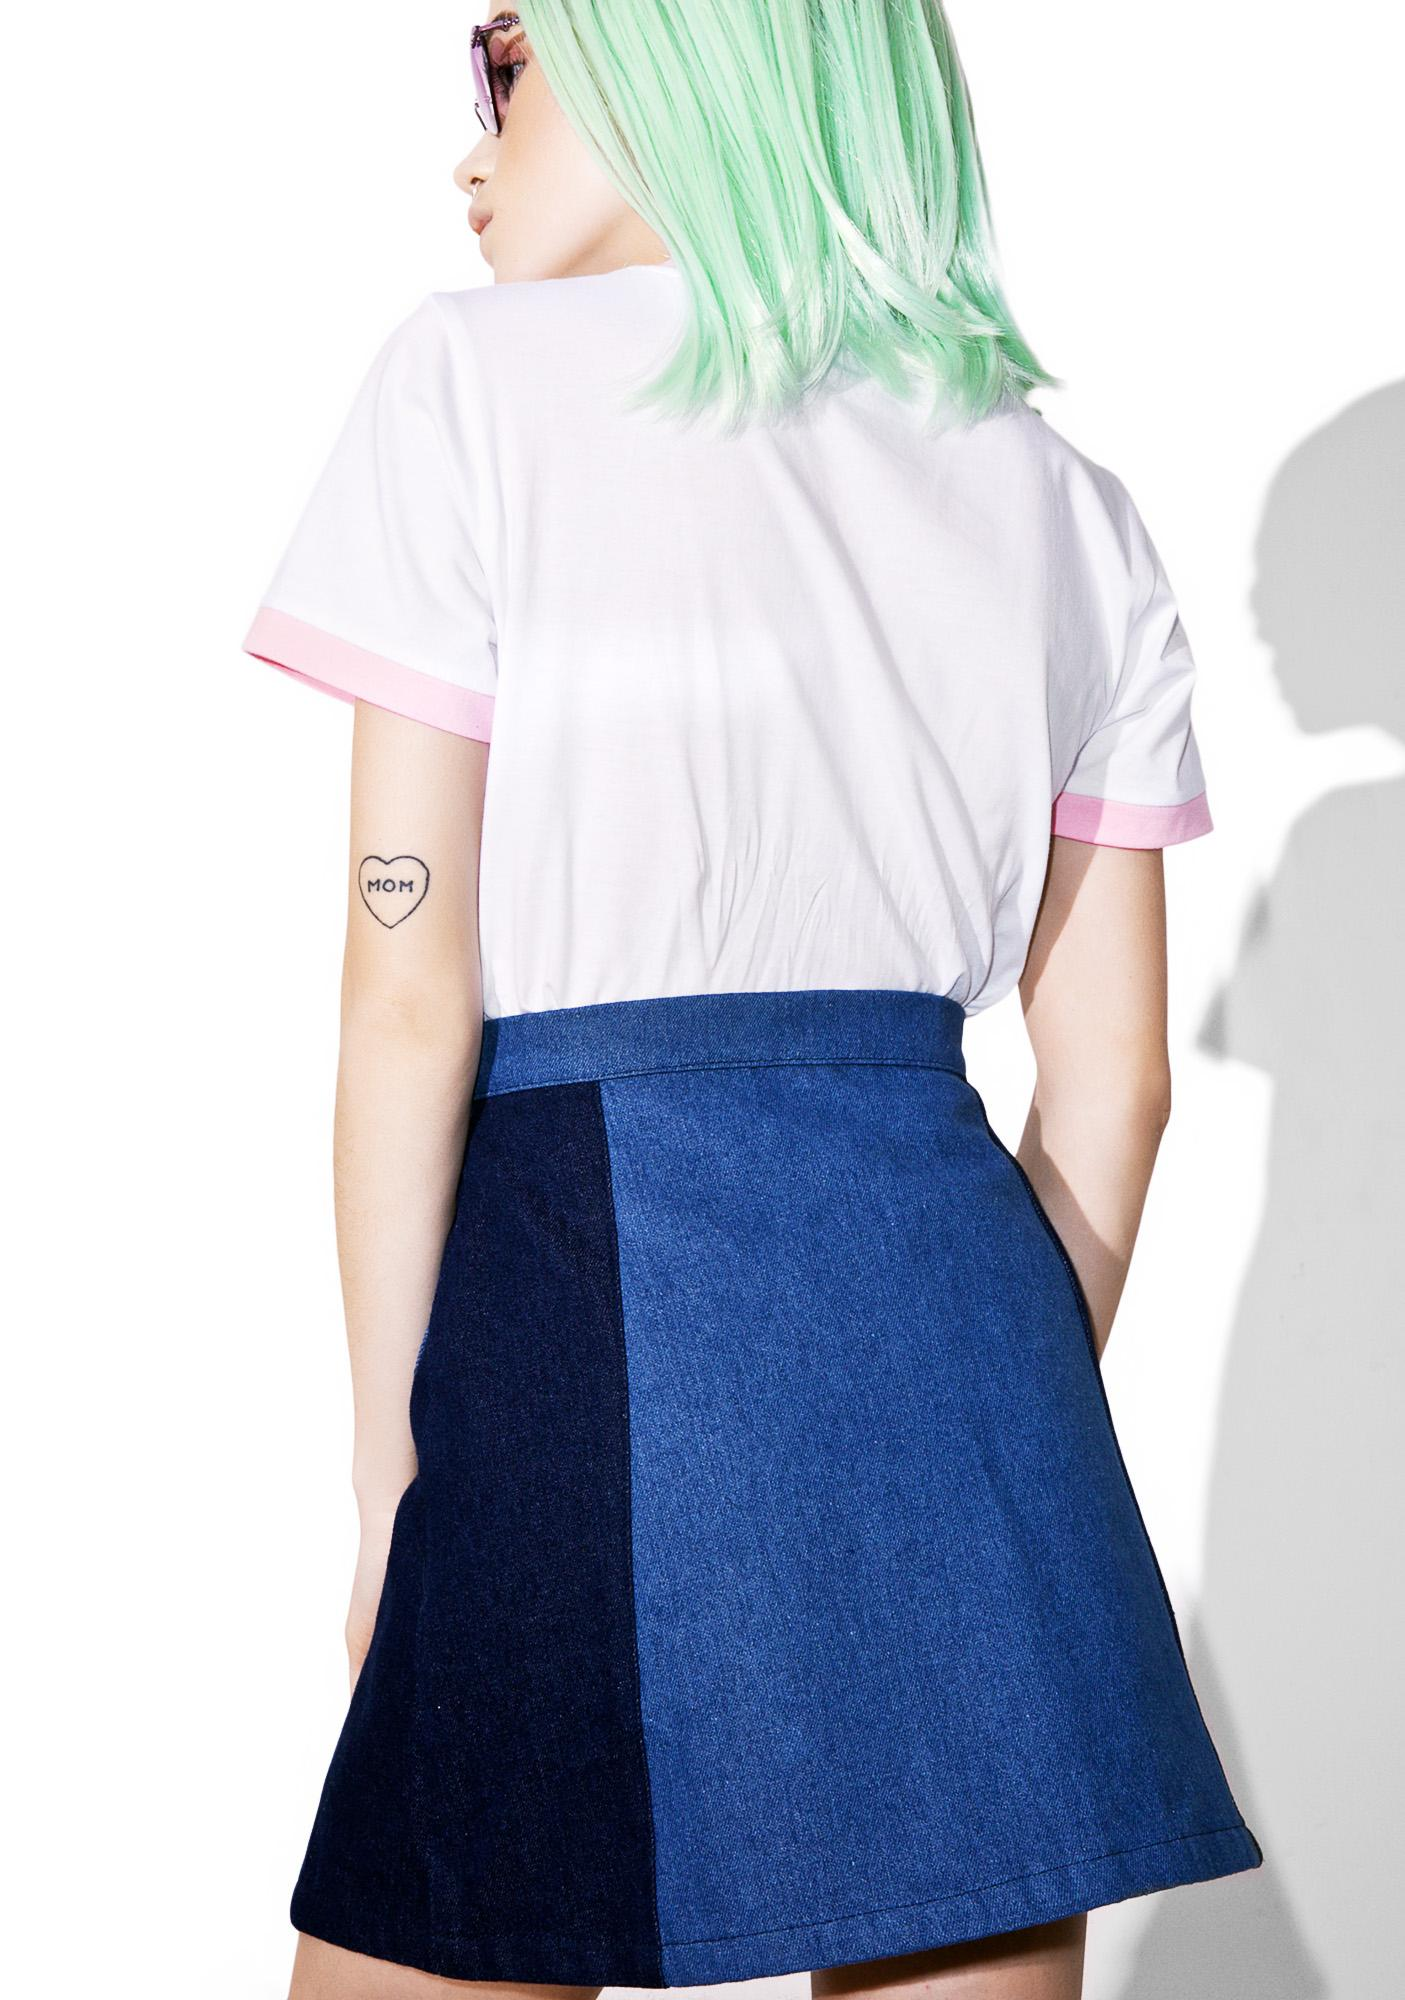 Sugarpills Denim Heart Skirt